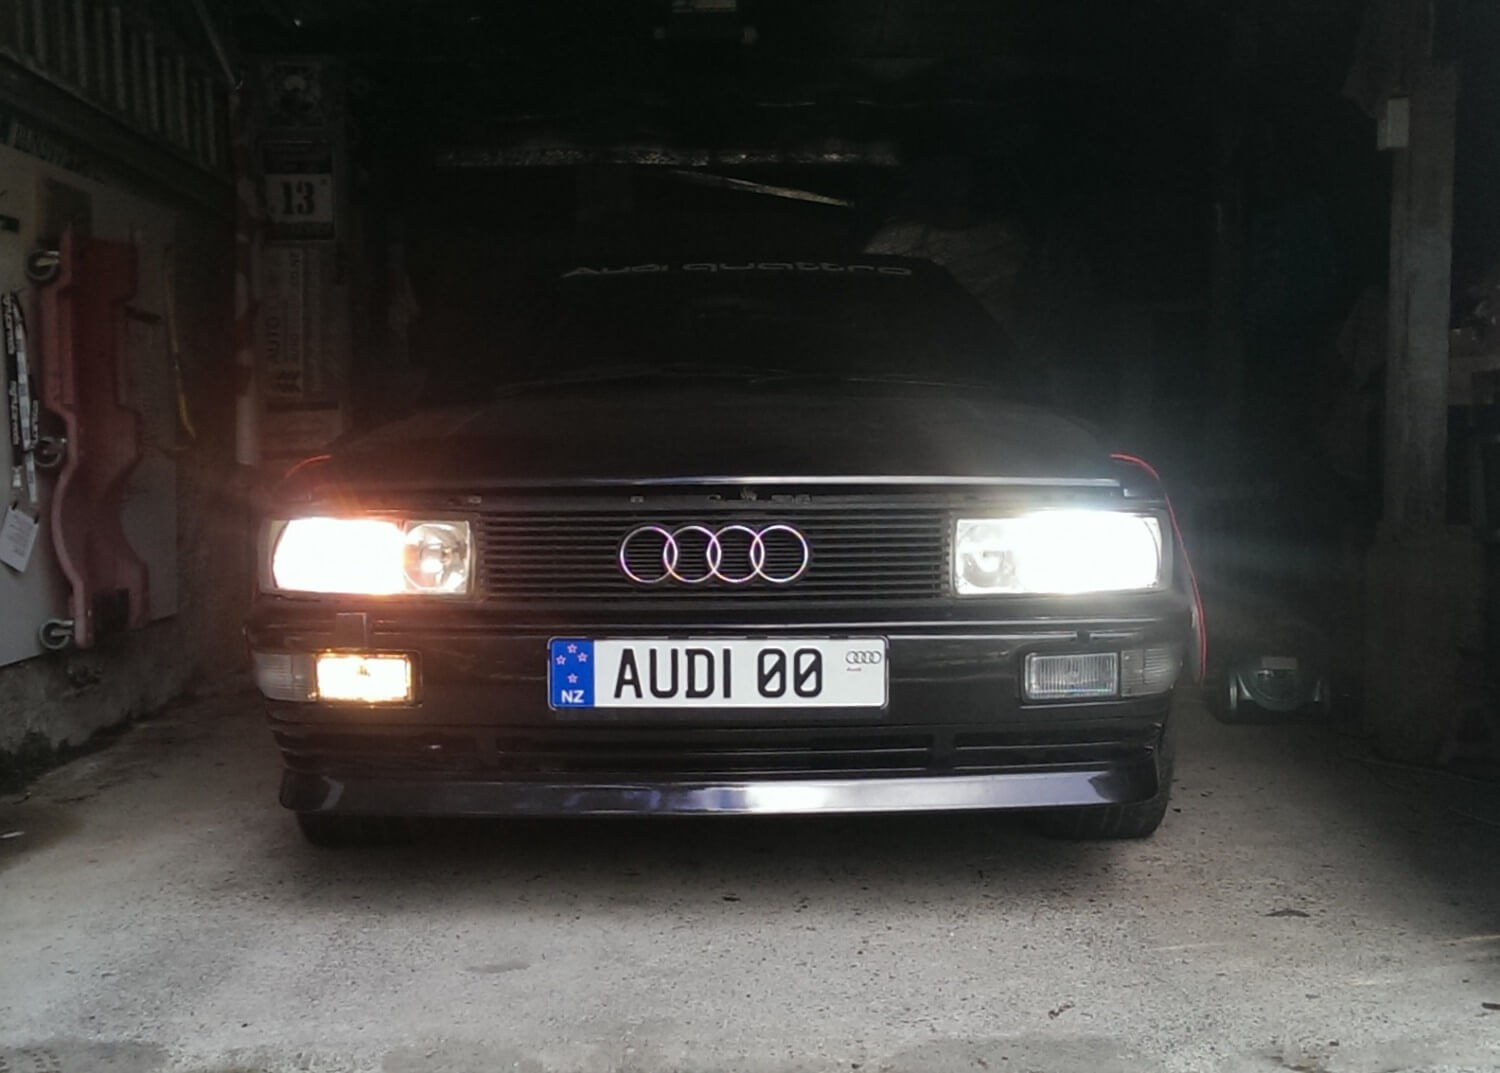 Robs-Audi-quattro-project-rusty0793